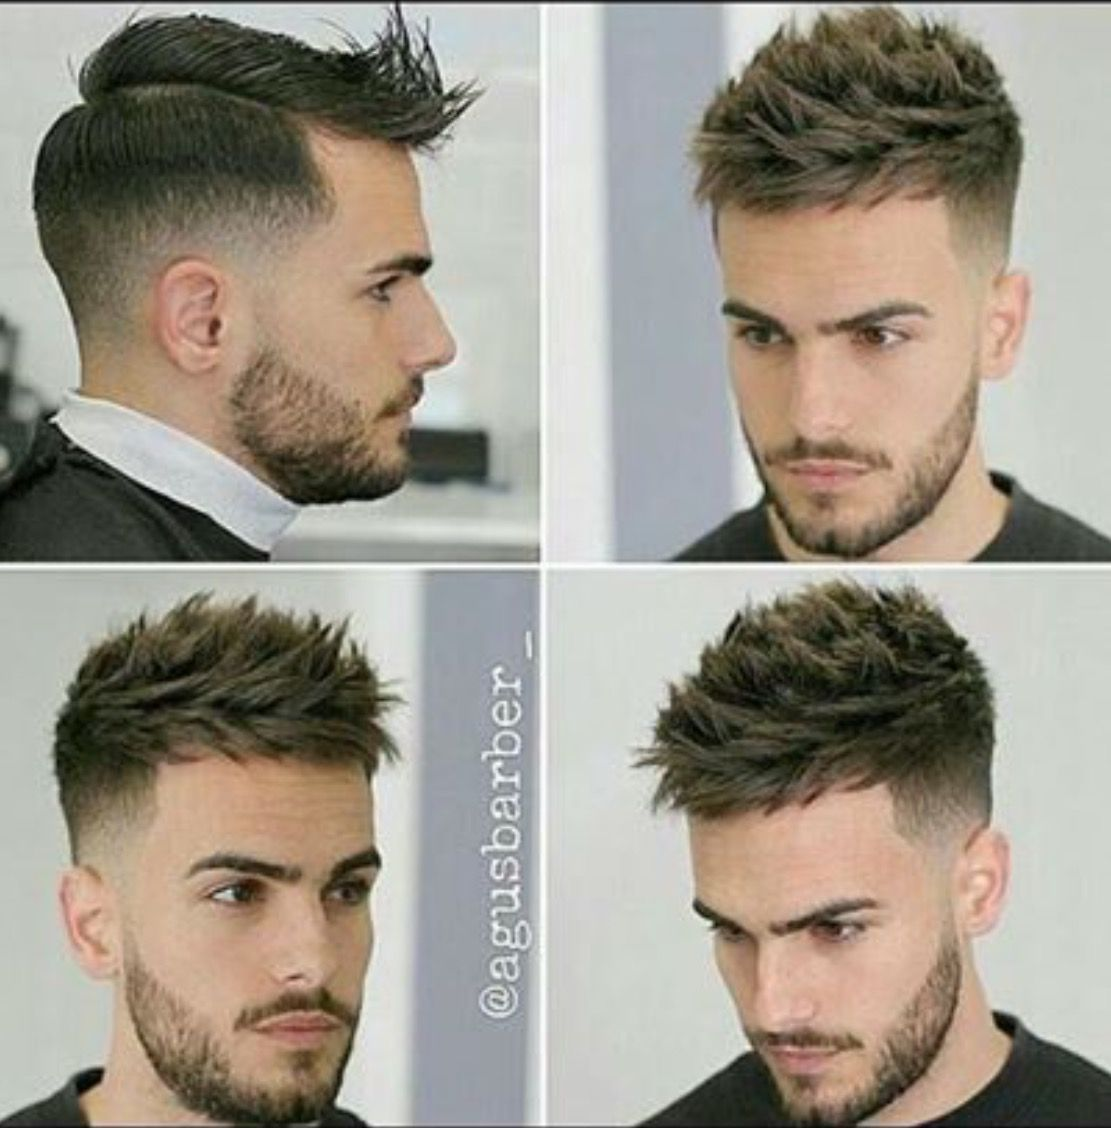 Men haircuts short pin by geones laguna on visual  pinterest  hair trends